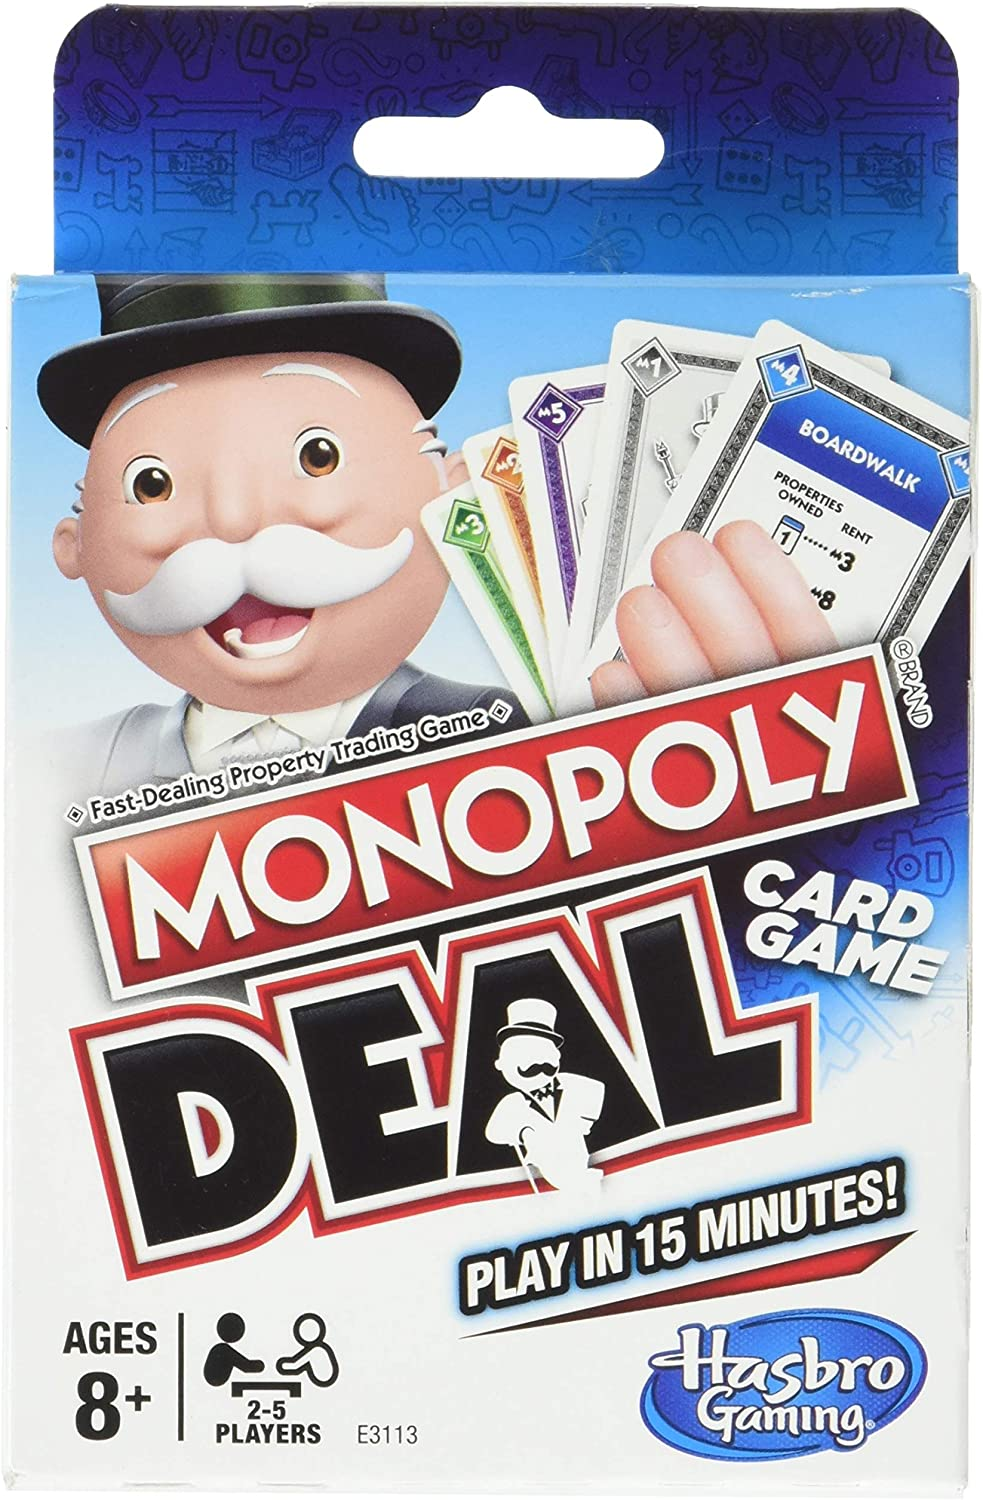 Amazon.com: Monopoly Deal Games: Toys & Games